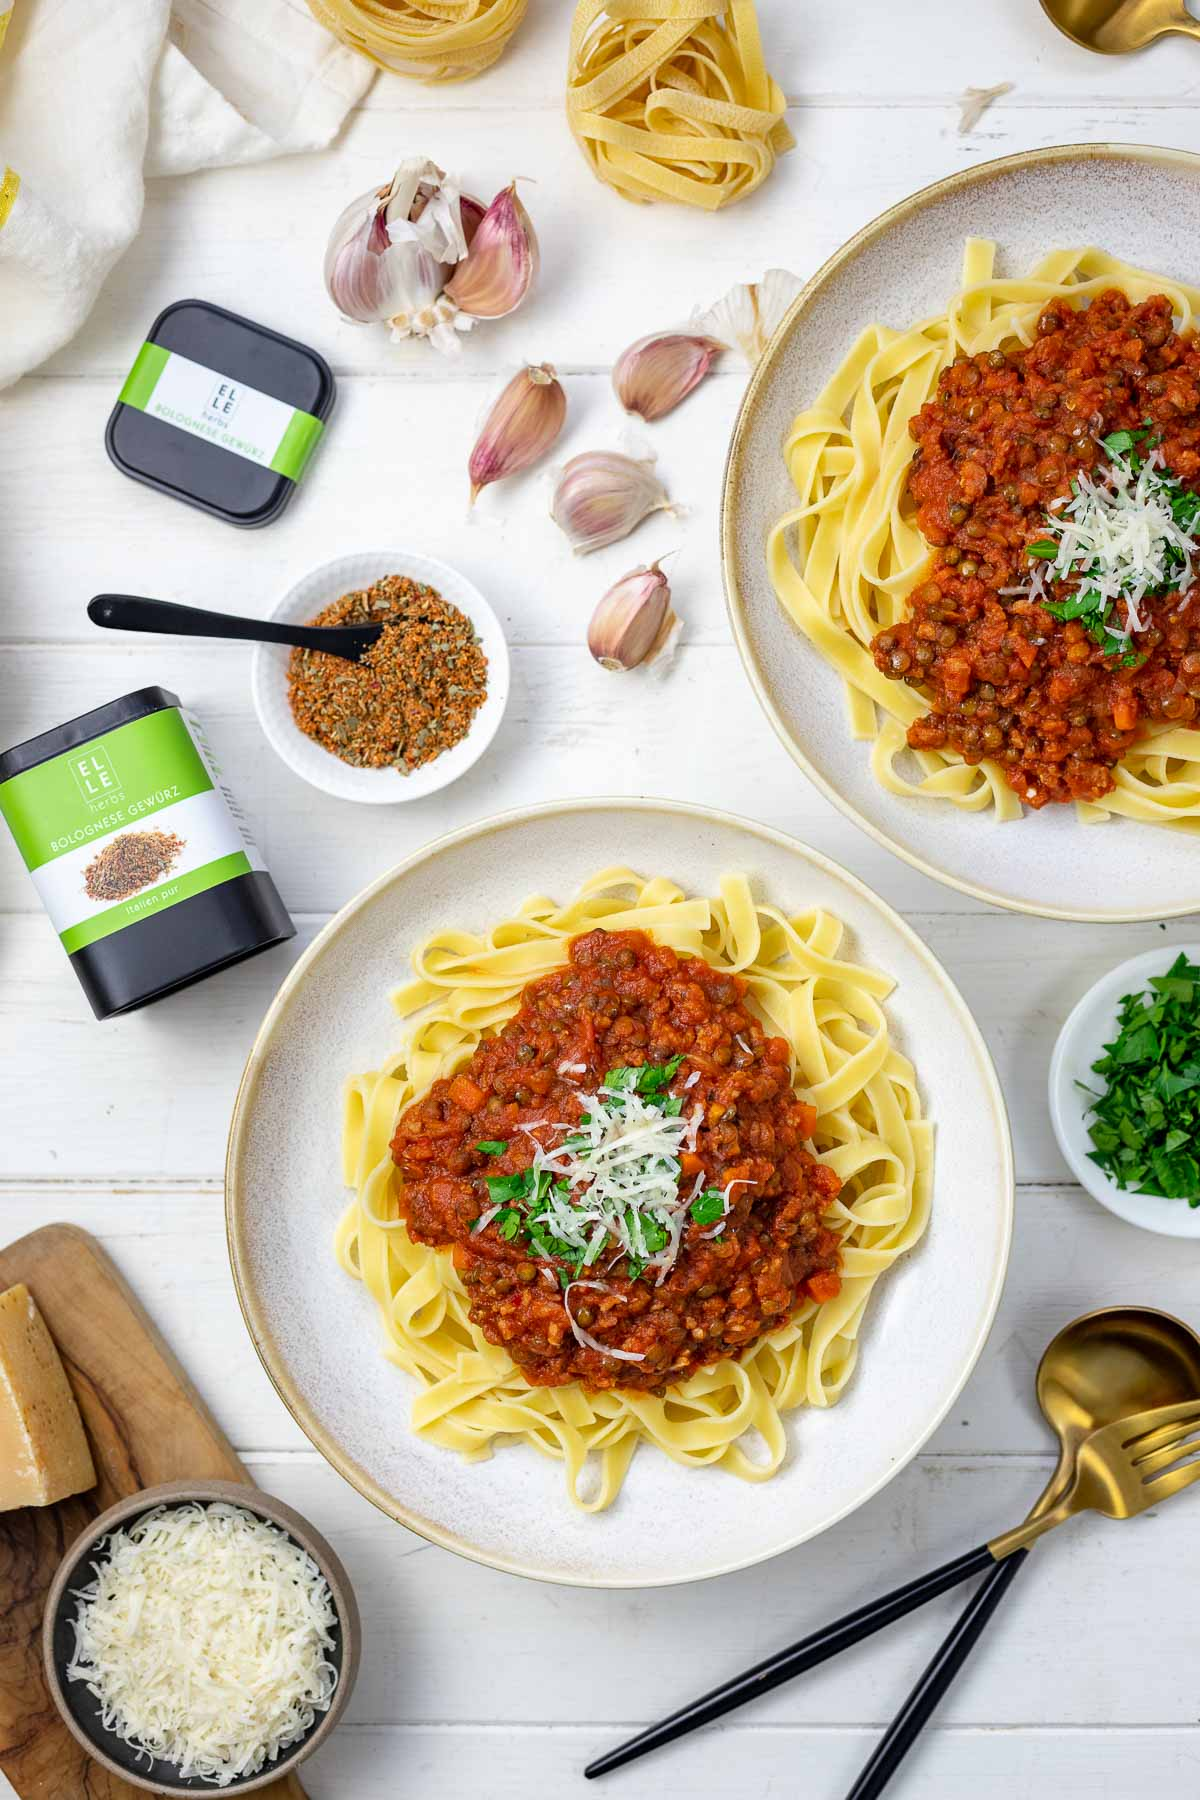 Bolognese with Lentils and Salsiccia Elle Herbs Bolognese Gewürzmischung